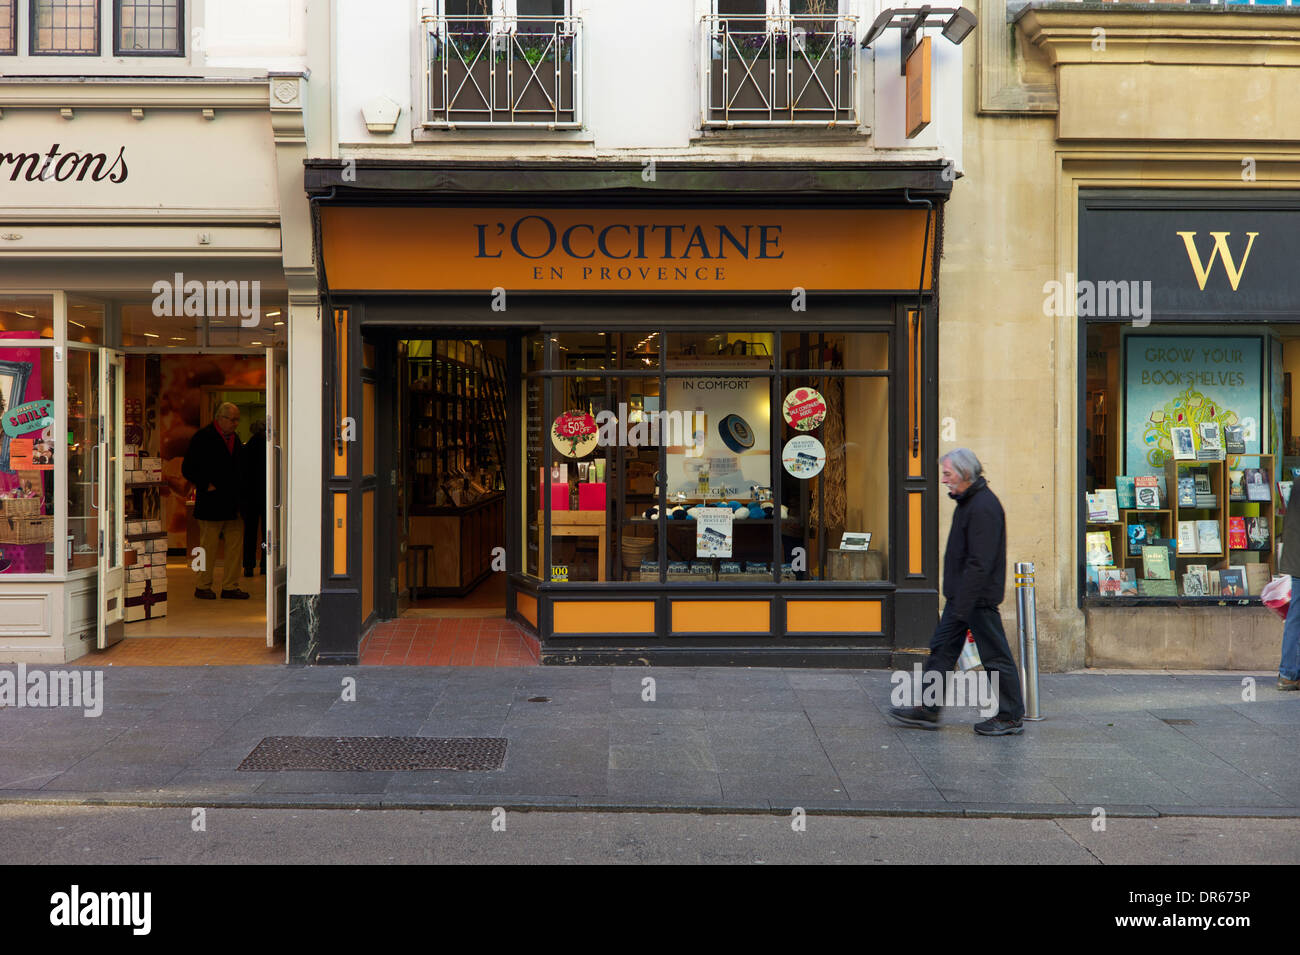 Find your closest L'OCCITANE boutique. We bring the Provencal experience to you with over 2, boutiques worldwide!